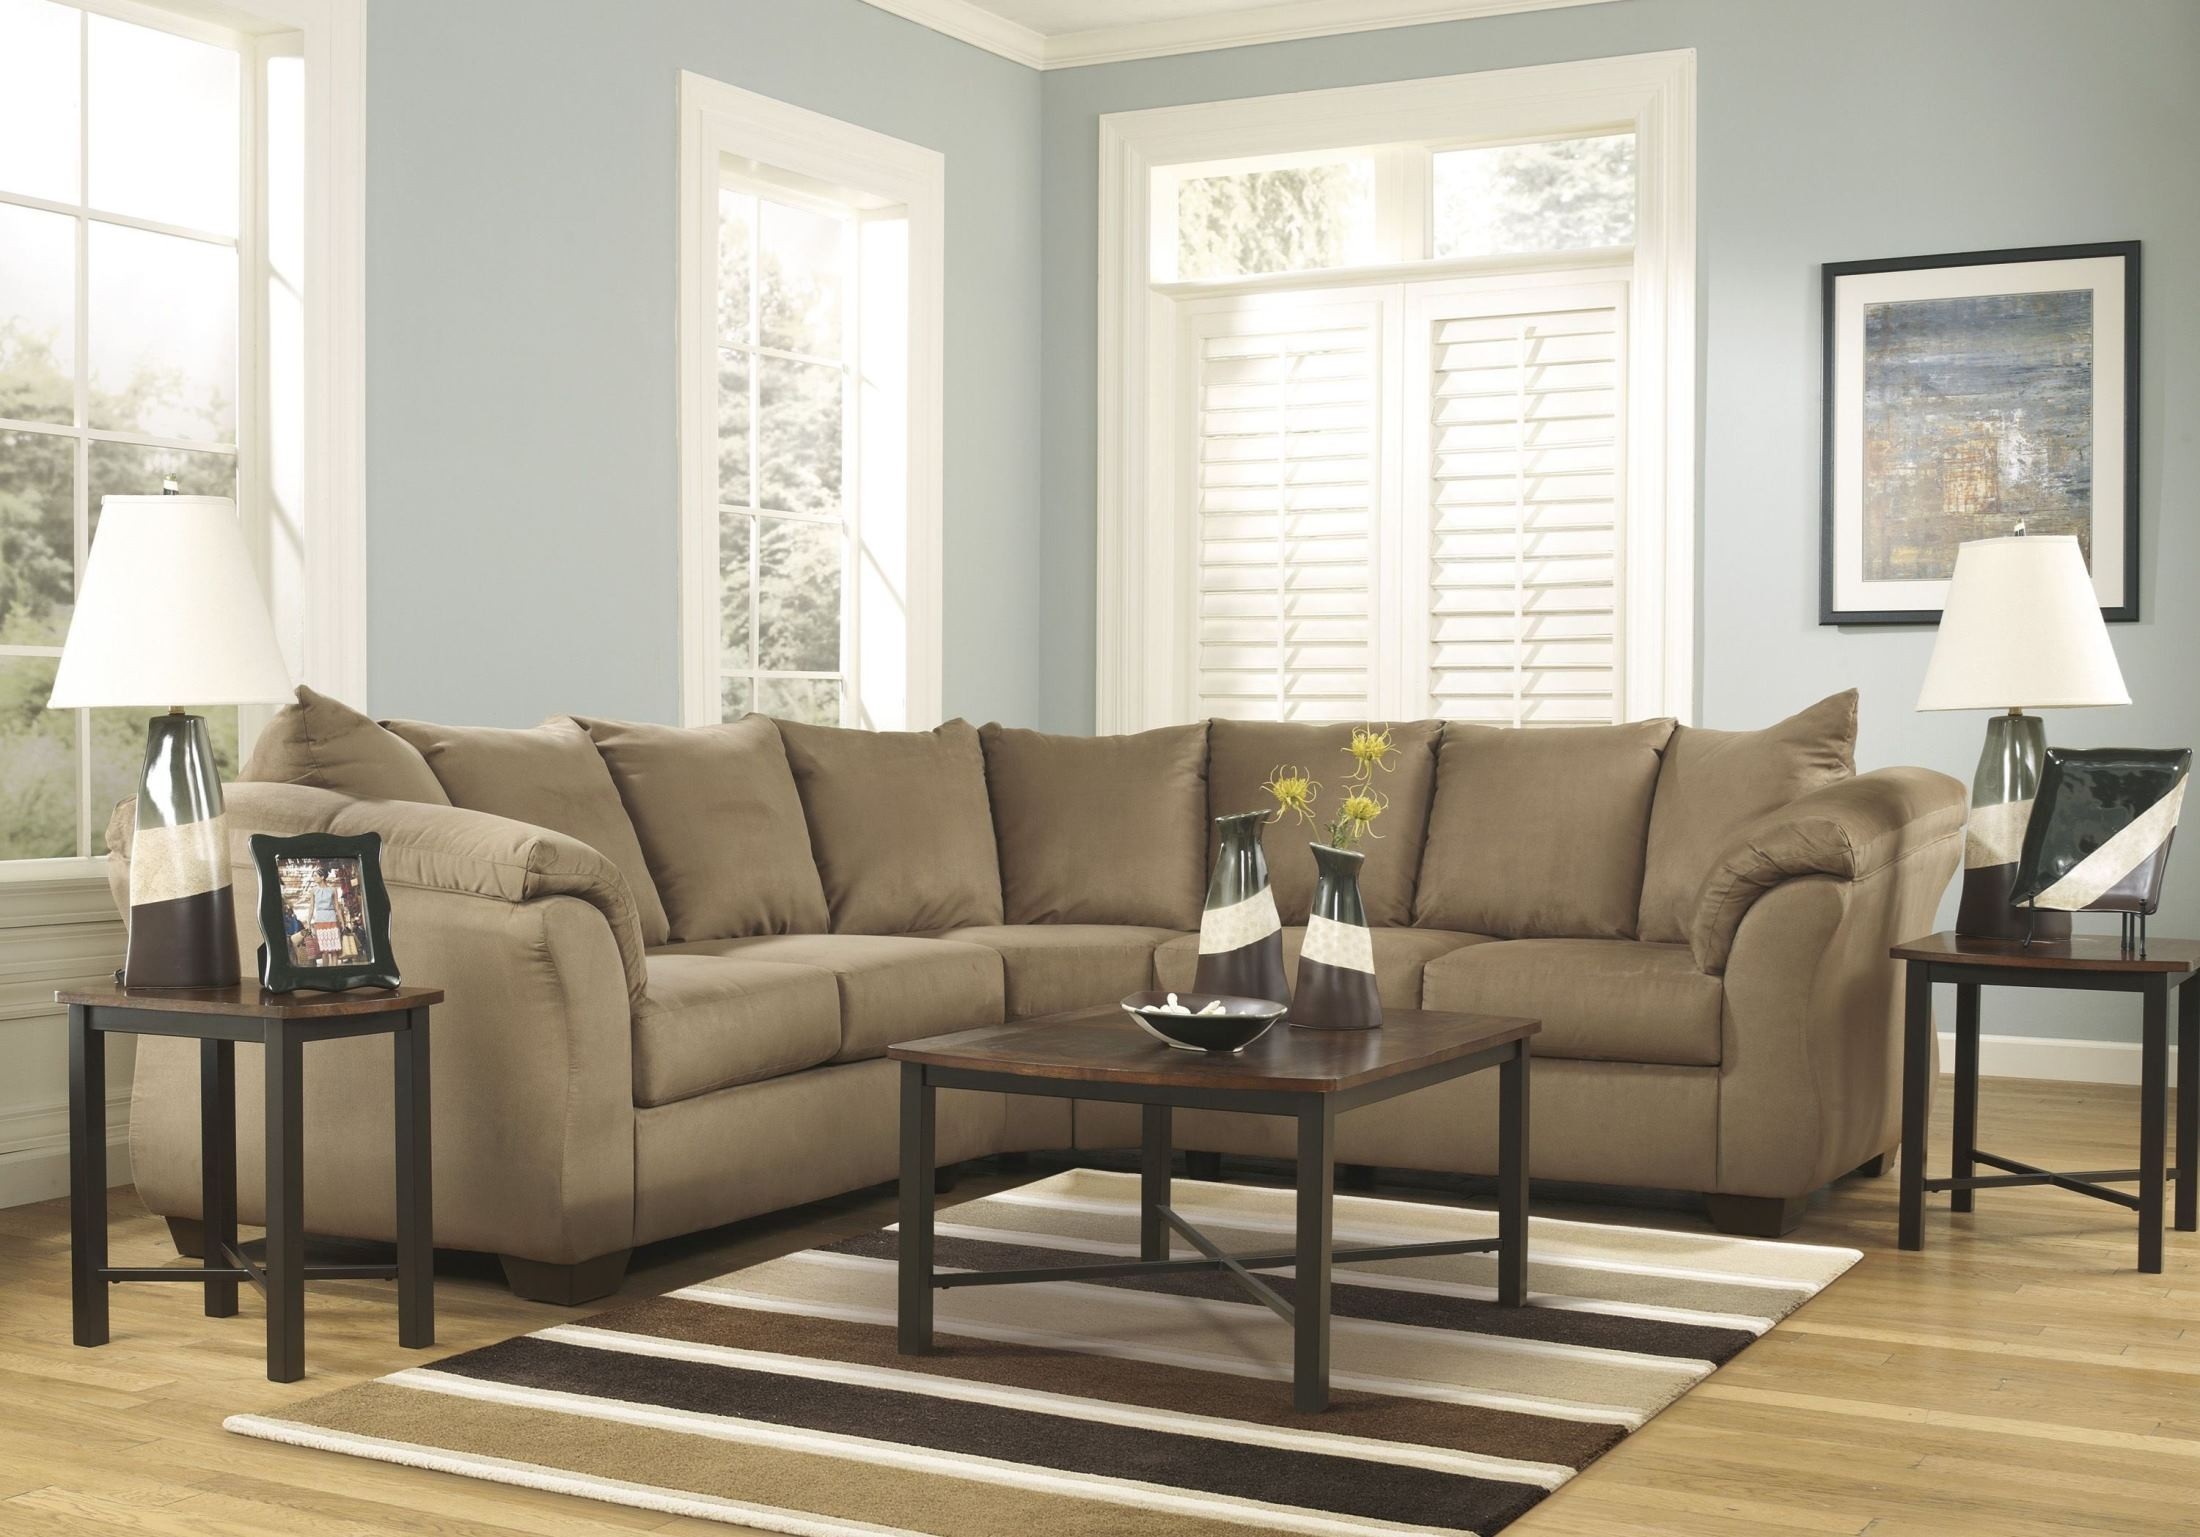 Darcy Mocha Sectional from Ashley (75002-55-56)   Coleman ...